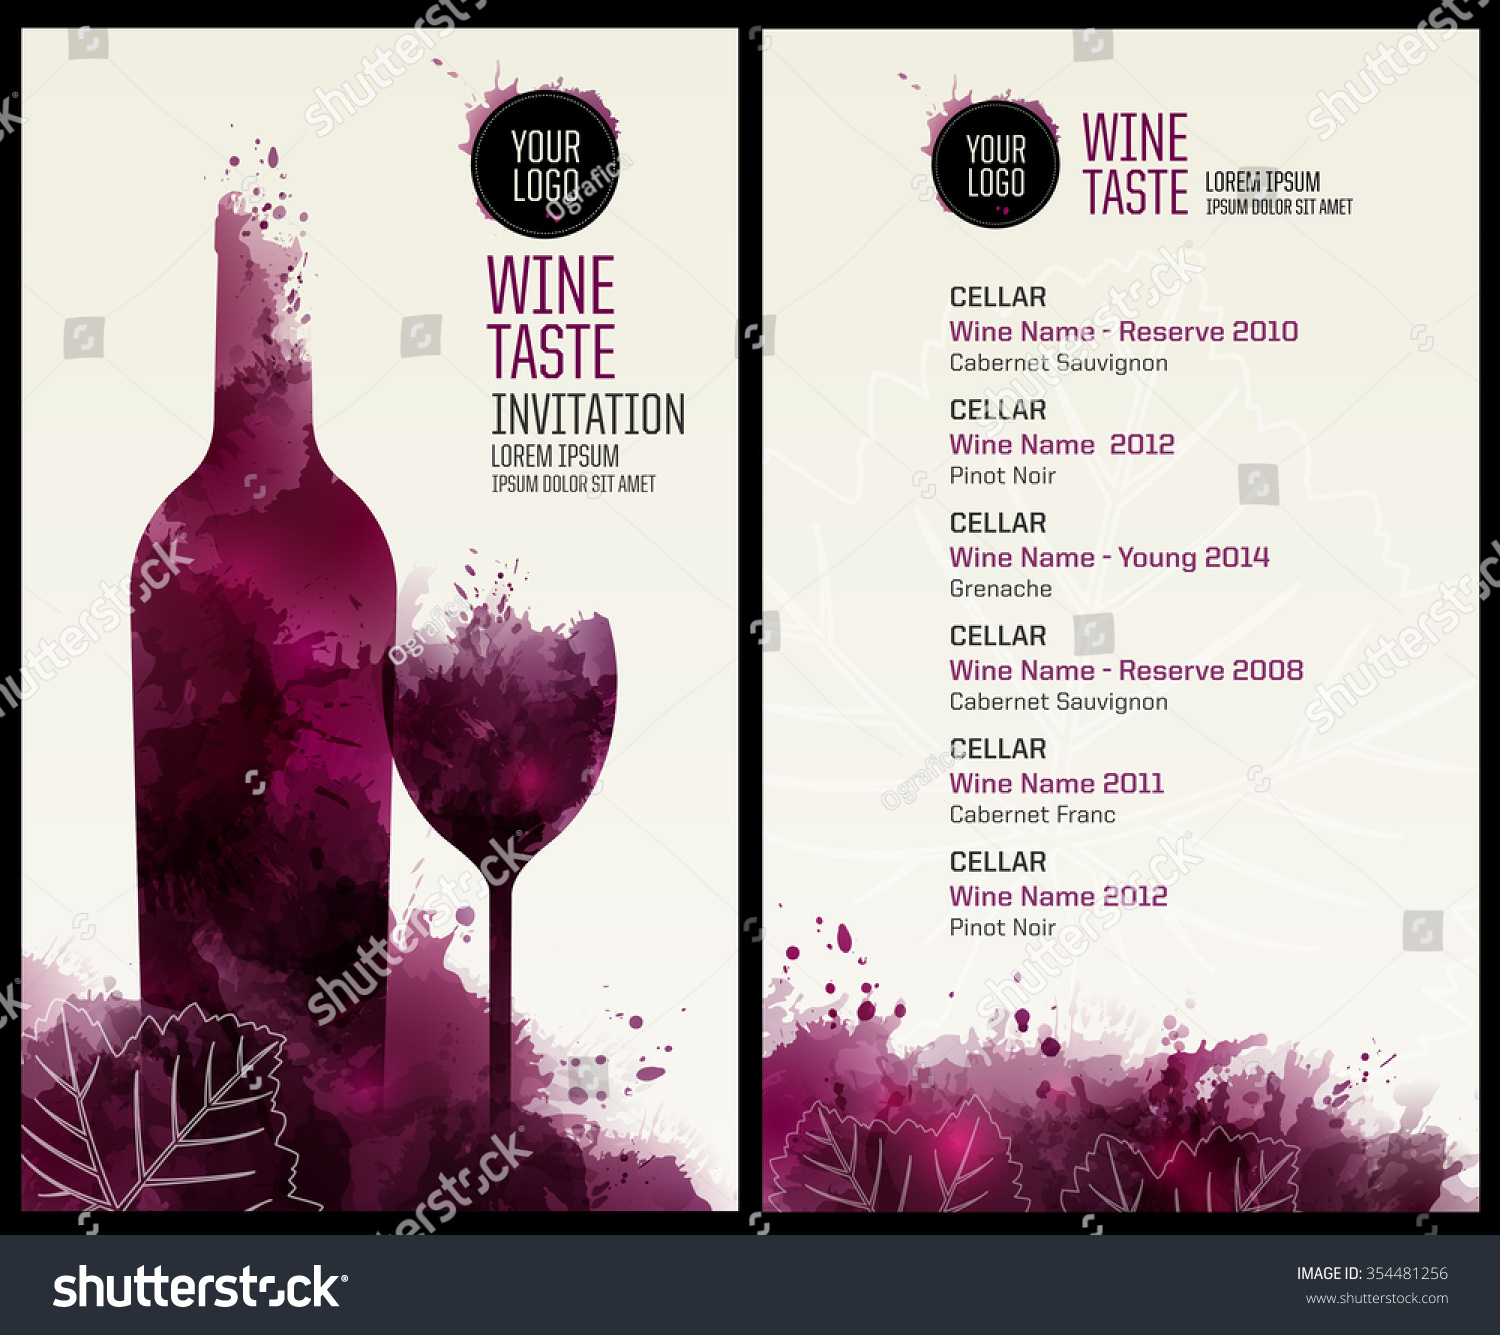 Royaltyfree Invitation Template For Event Or Party - Wine tasting event flyer template free